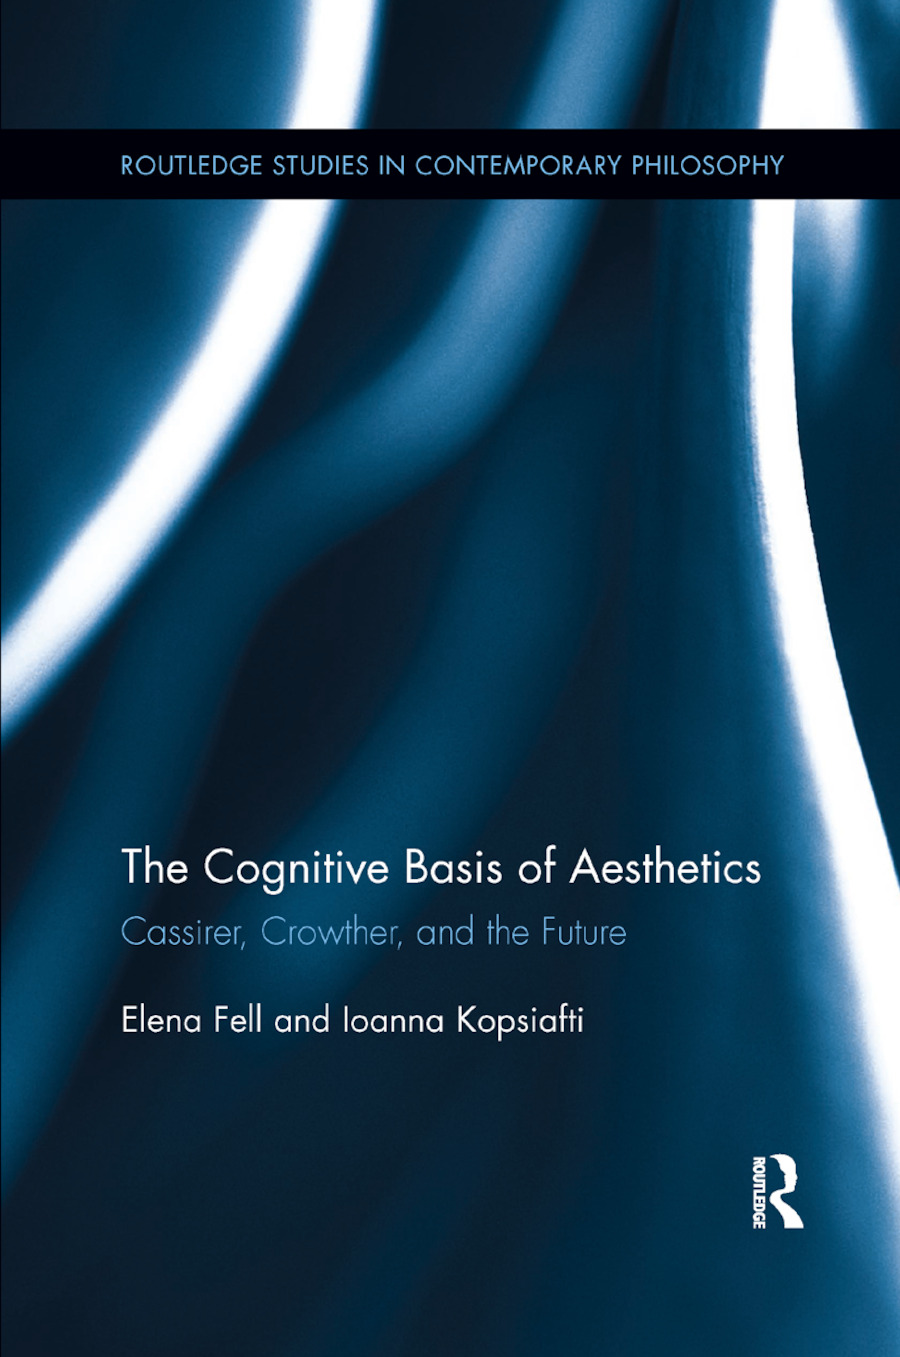 The Cognitive Basis of Aesthetics: Cassirer, Crowther, and the Future book cover